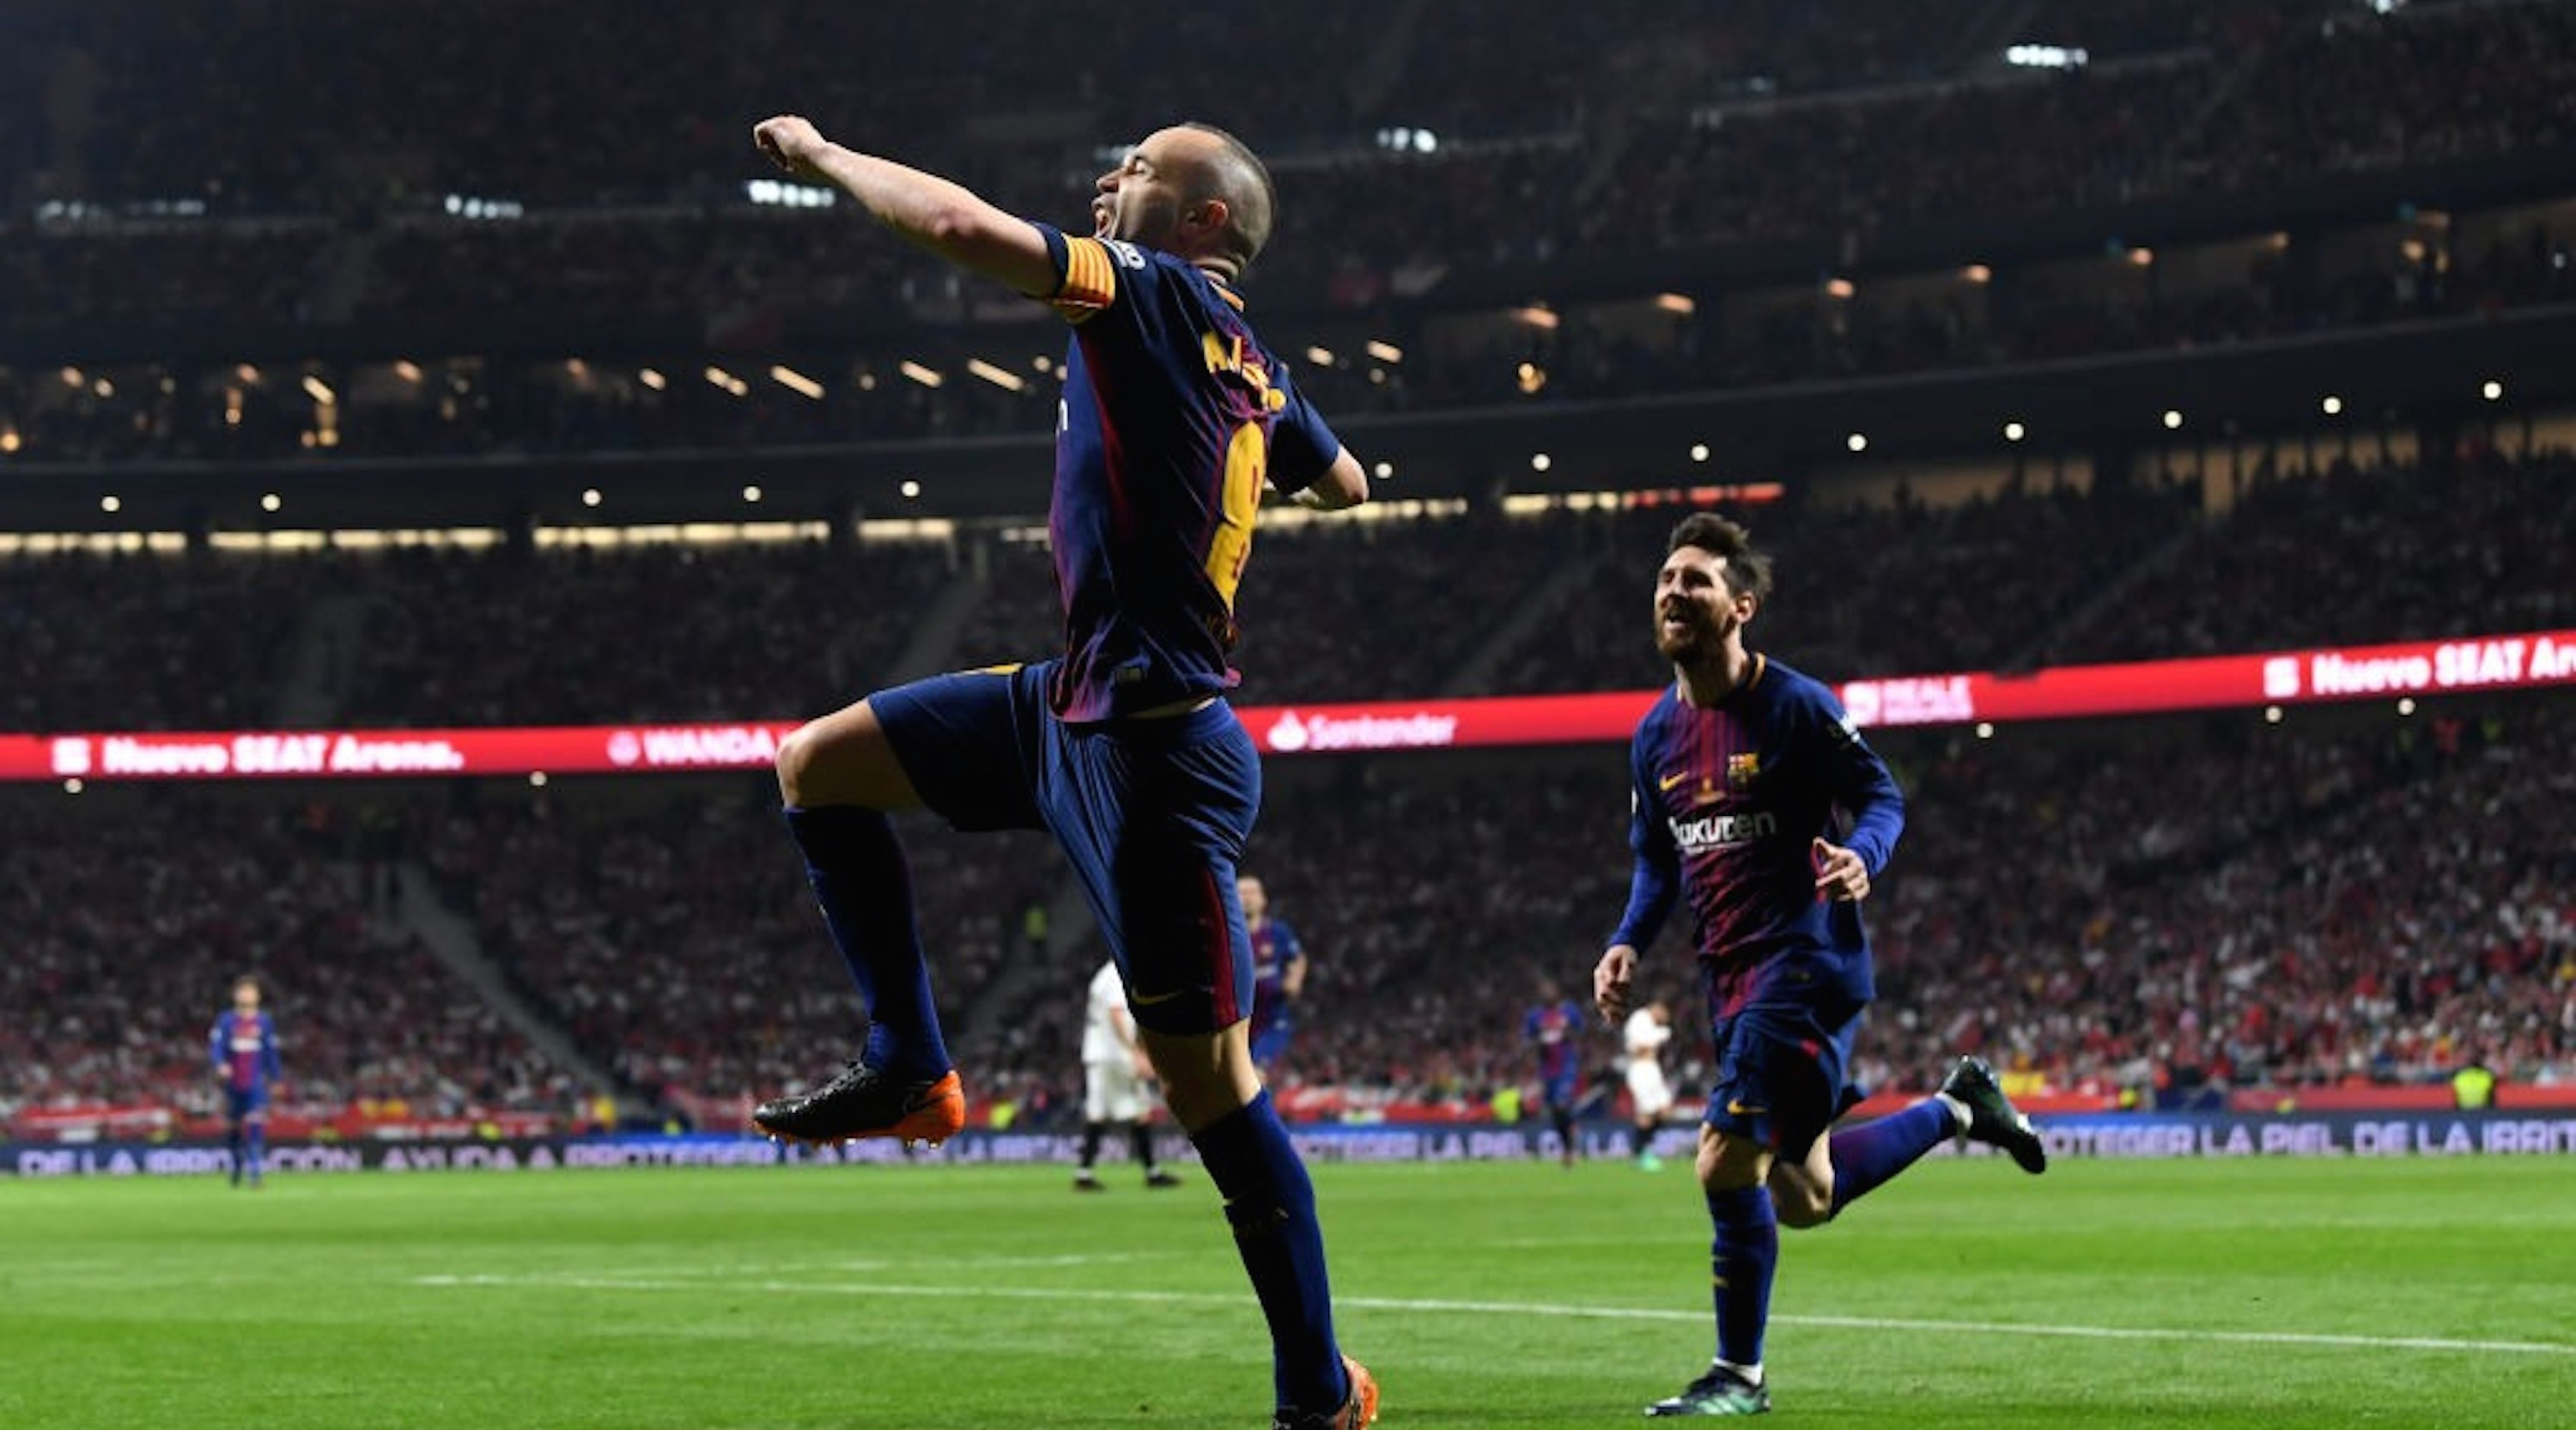 MADRID, SPAIN - APRIL 21: Andres Iniesta of Barcelona celebrates after scoring the teams fourth goal of the game during the Spanish Copa del Rey match between Barcelona and Sevilla at Wanda Metropolitano on April 21, 2018 in Barcelona, . (Photo by David Ramos/Getty Images)